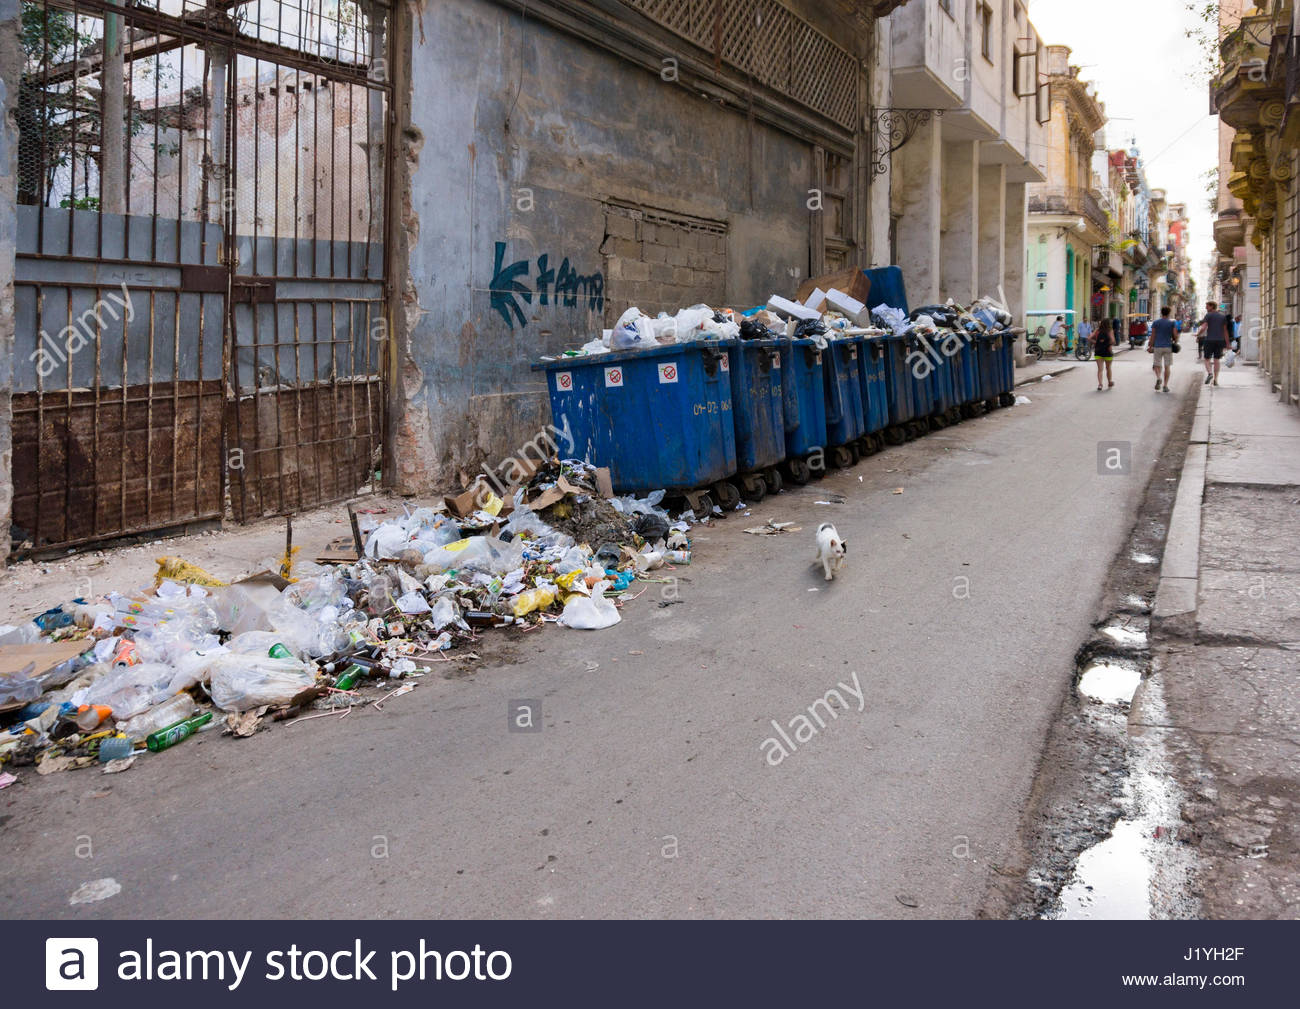 Cuba social issues: unhygienic 'Teniente Rey' street in Old Havana. Lack of garbage pick up. The street - Stock Image